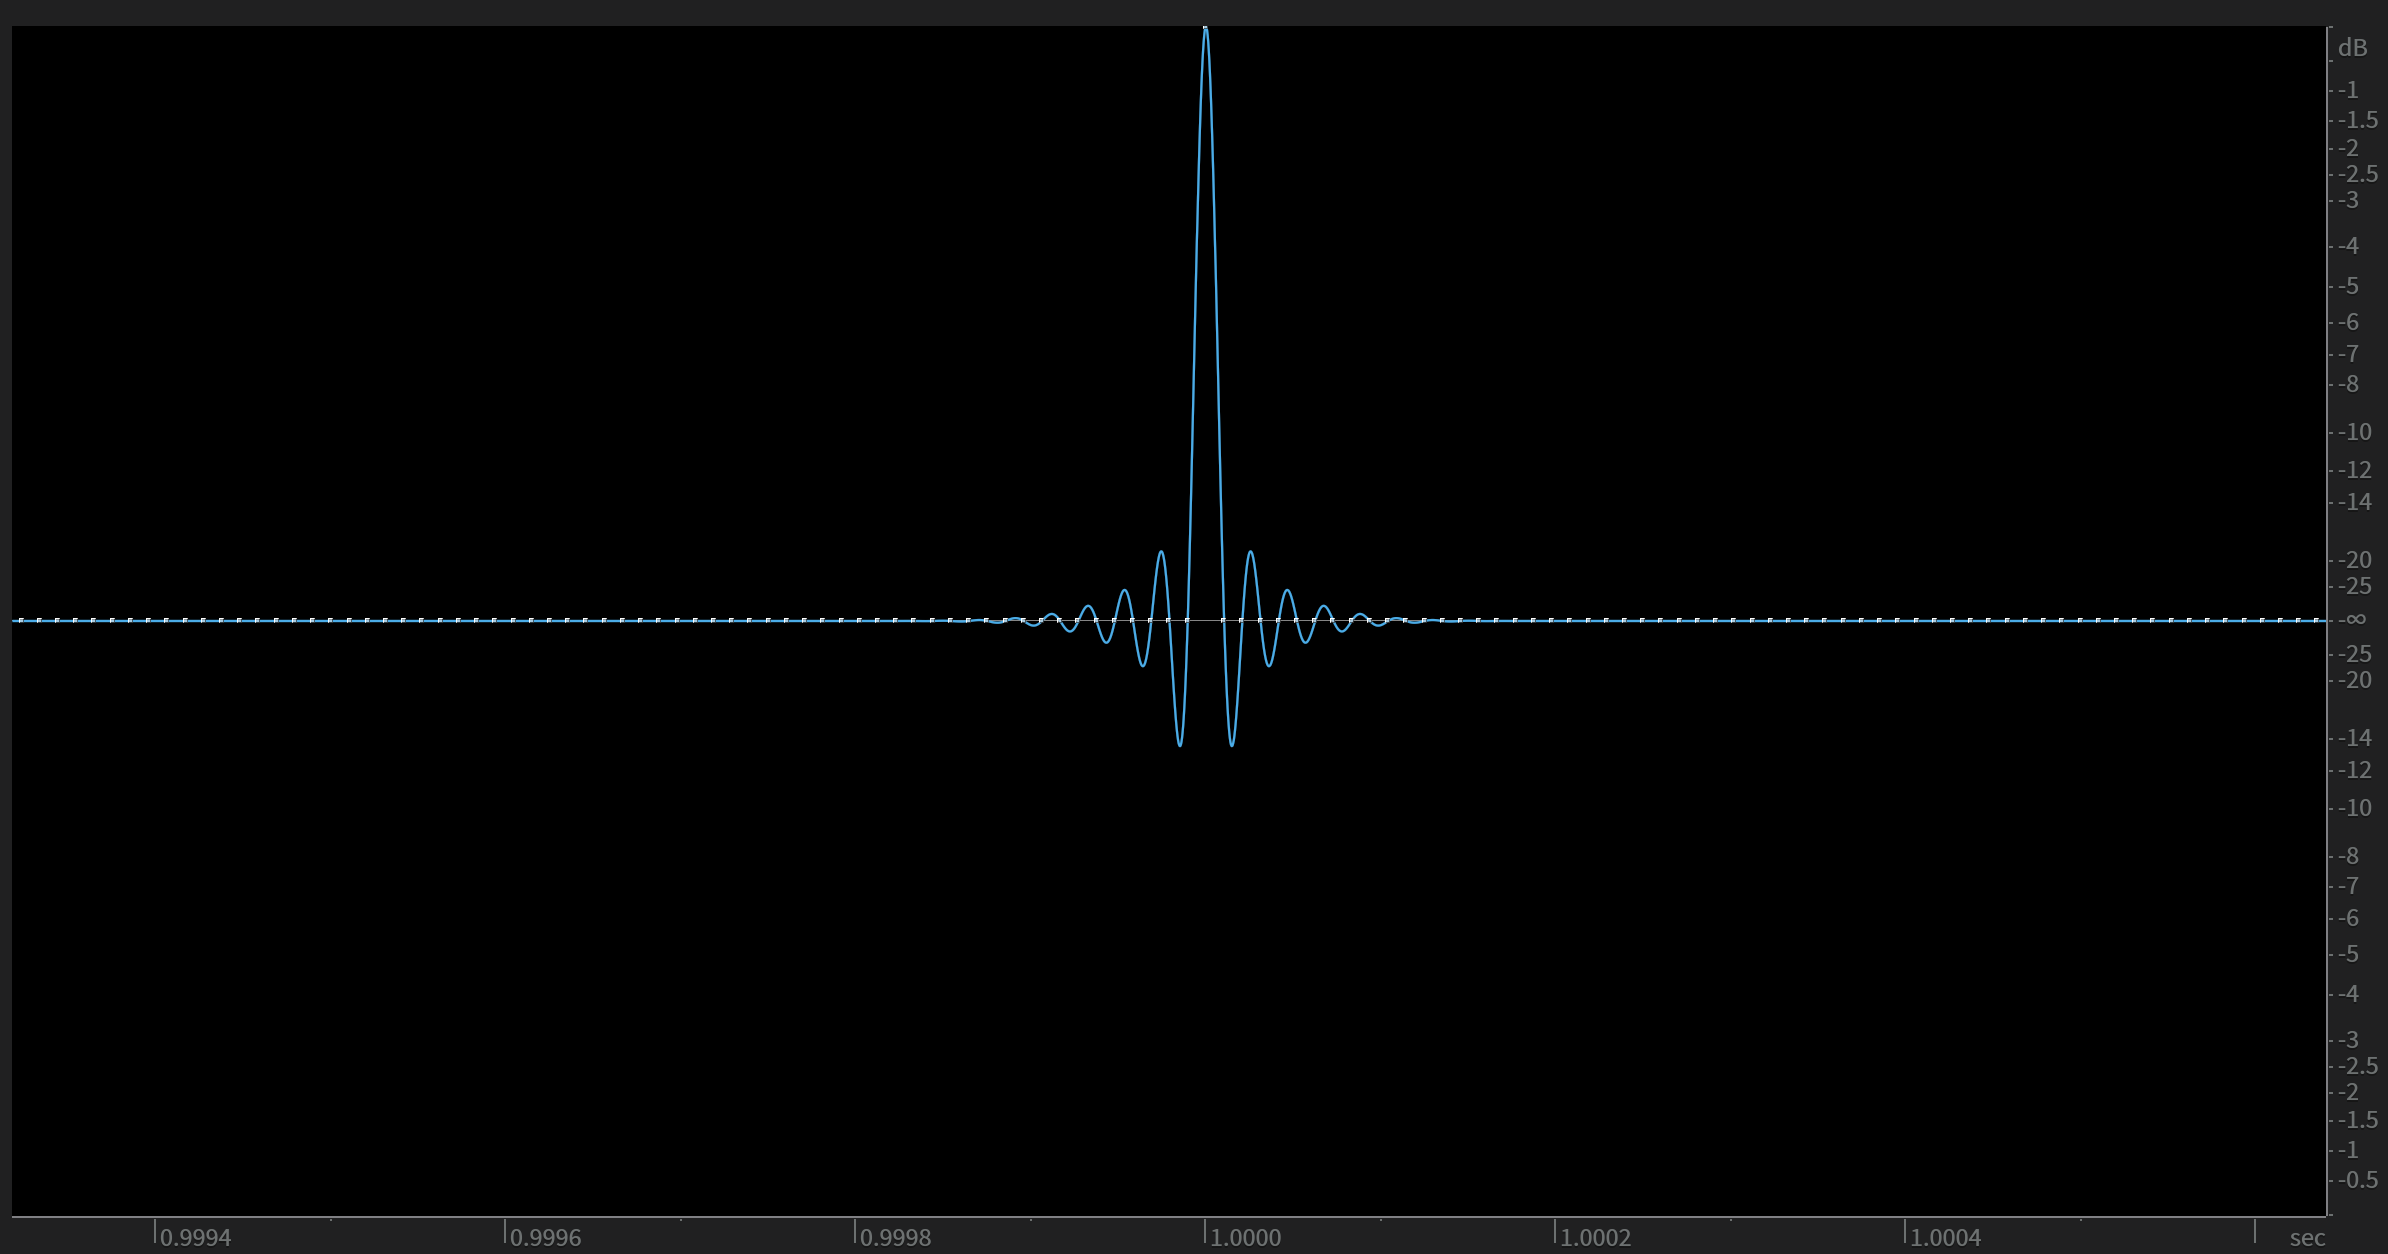 A pure impulse – you can think of it as a perfect transient. In this case the frequency bandwidth will be limited by the sample rate of the digital system (44kHz, 96kHz, etc.)